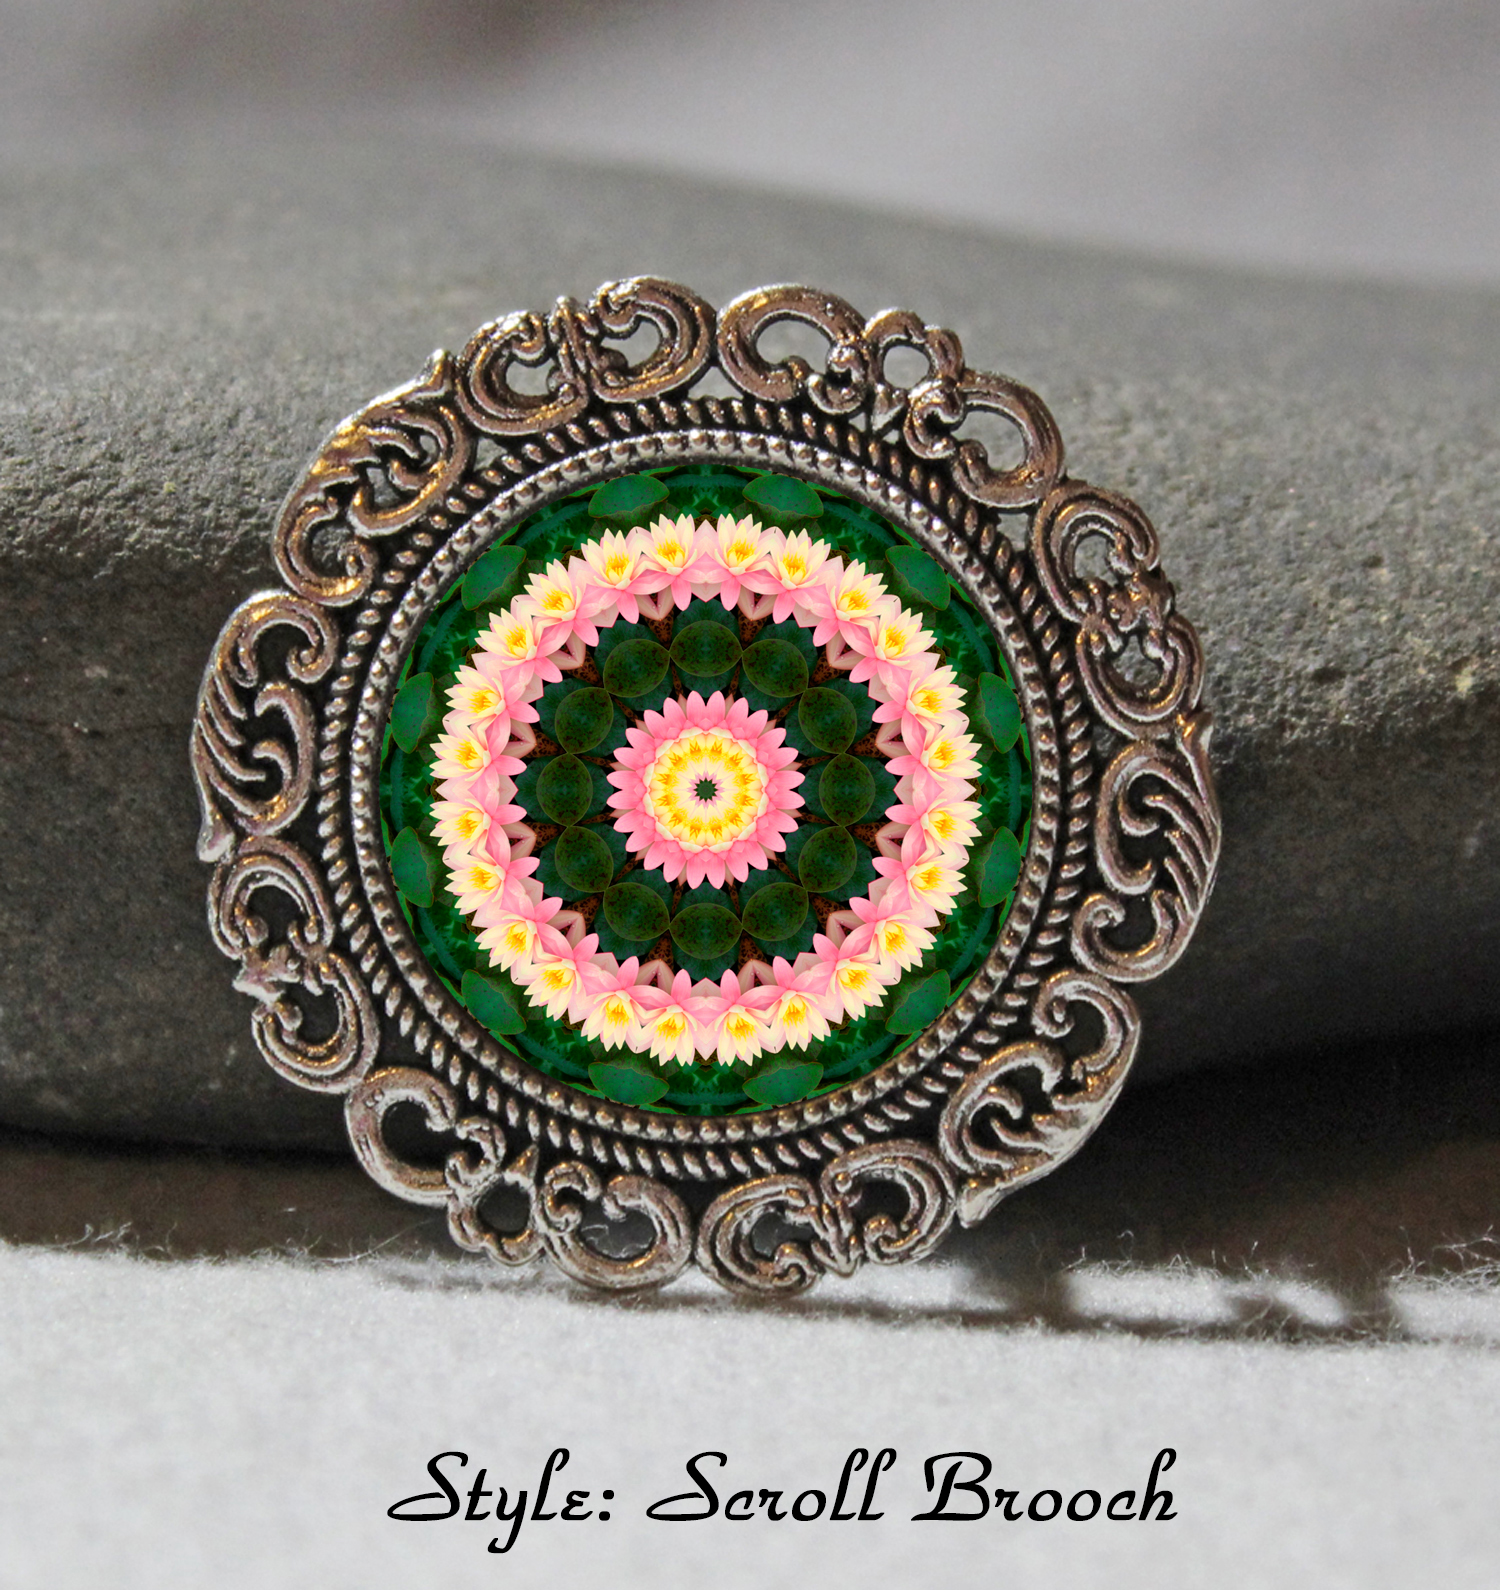 Brooch Lapel Pin Collar Pin Hat Pin Scarf Pin Lotus Flower Chakra Mandala Sacred Geometry Unique Gift For Her Enlightened One